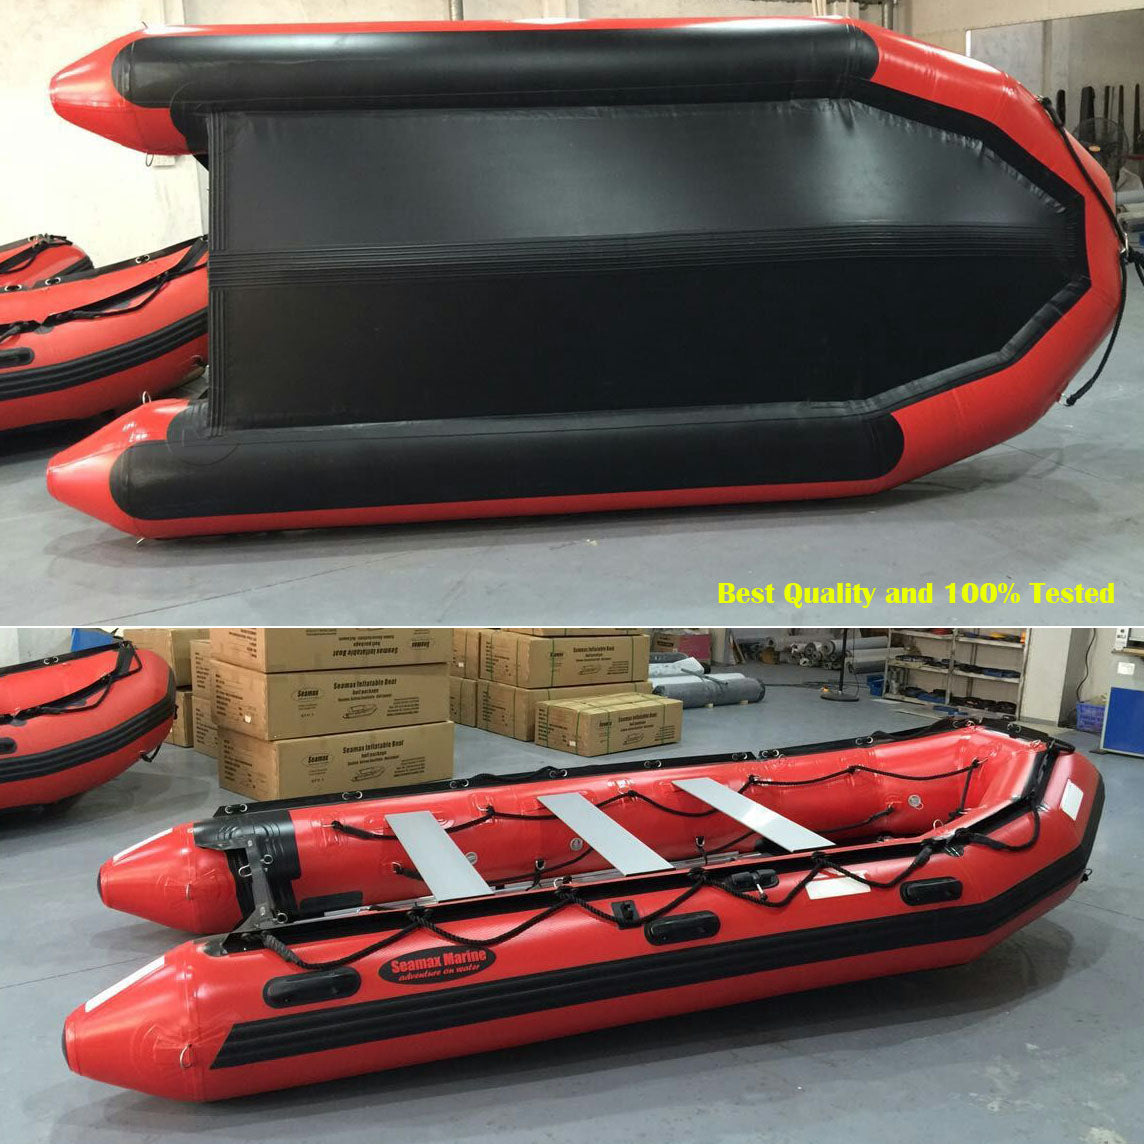 Seamax Ocean430T 14 Feet Commercial Grade Inflatable Boat, Max 10  Passengers and 35HP Rated